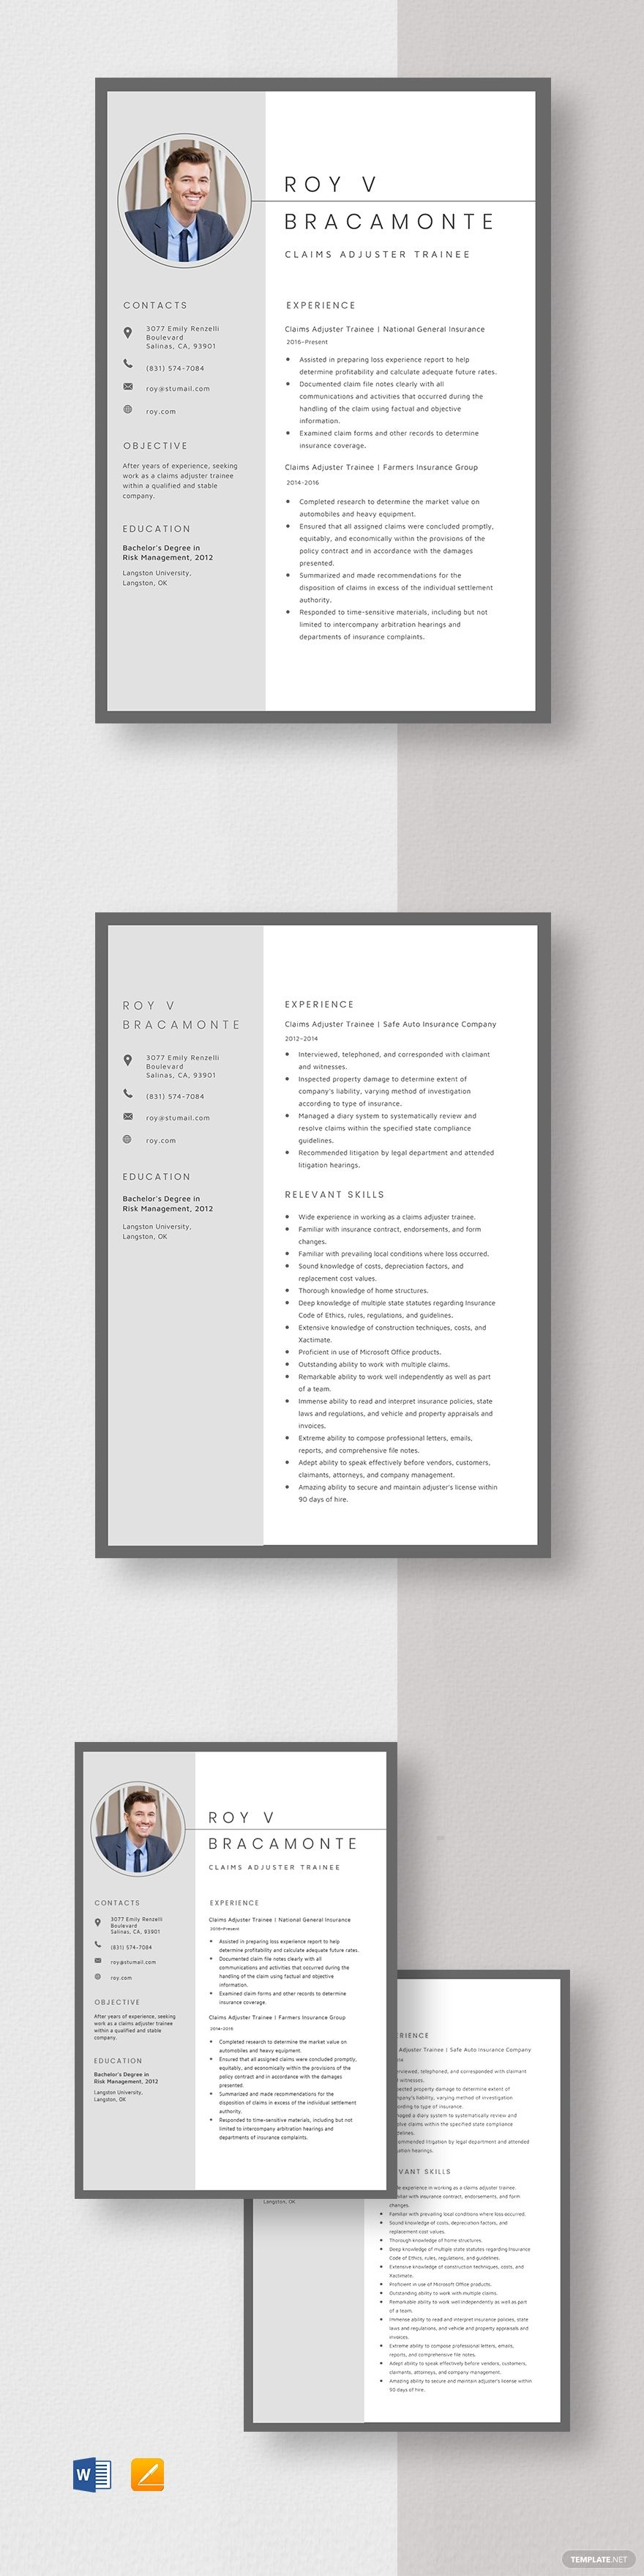 Pin On Infographic Templates Design